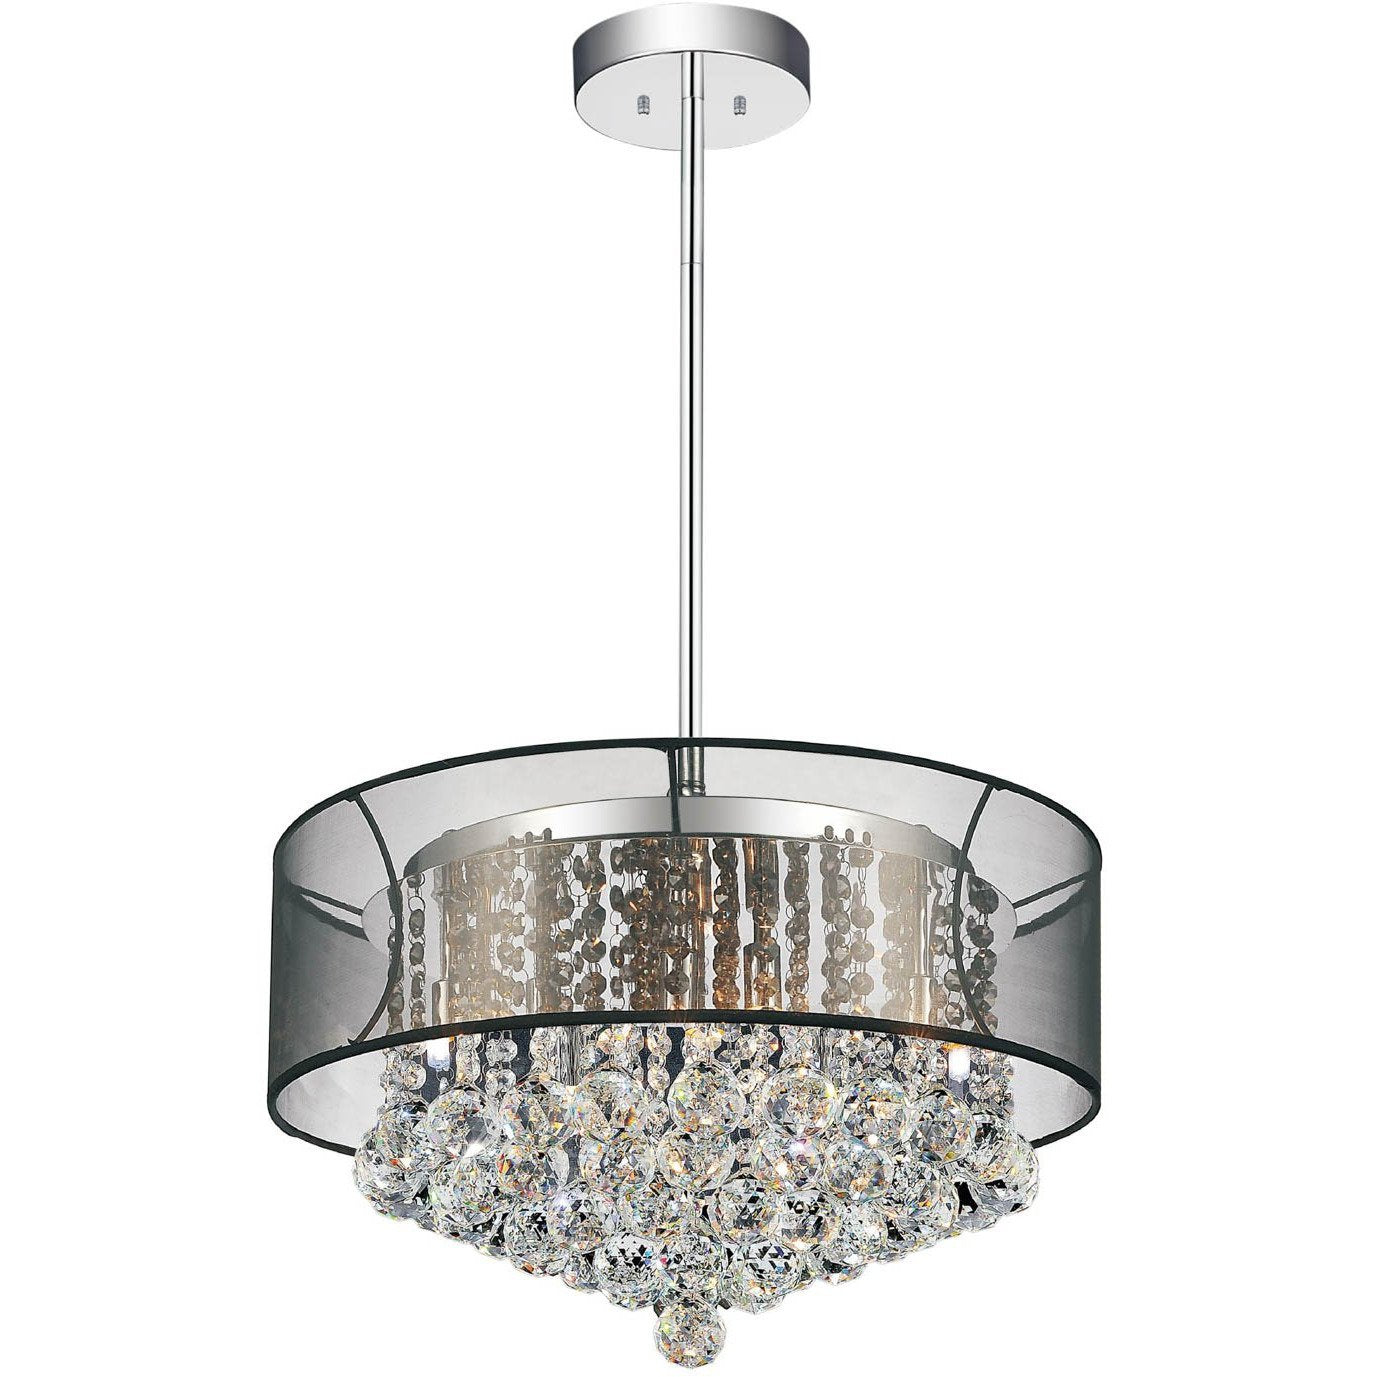 CWI Lighting Chandeliers Chrome / K9 Clear Radiant 9 Light Drum Shade Chandelier with Chrome finish by CWI Lighting 5062P20C (Clear + BK)